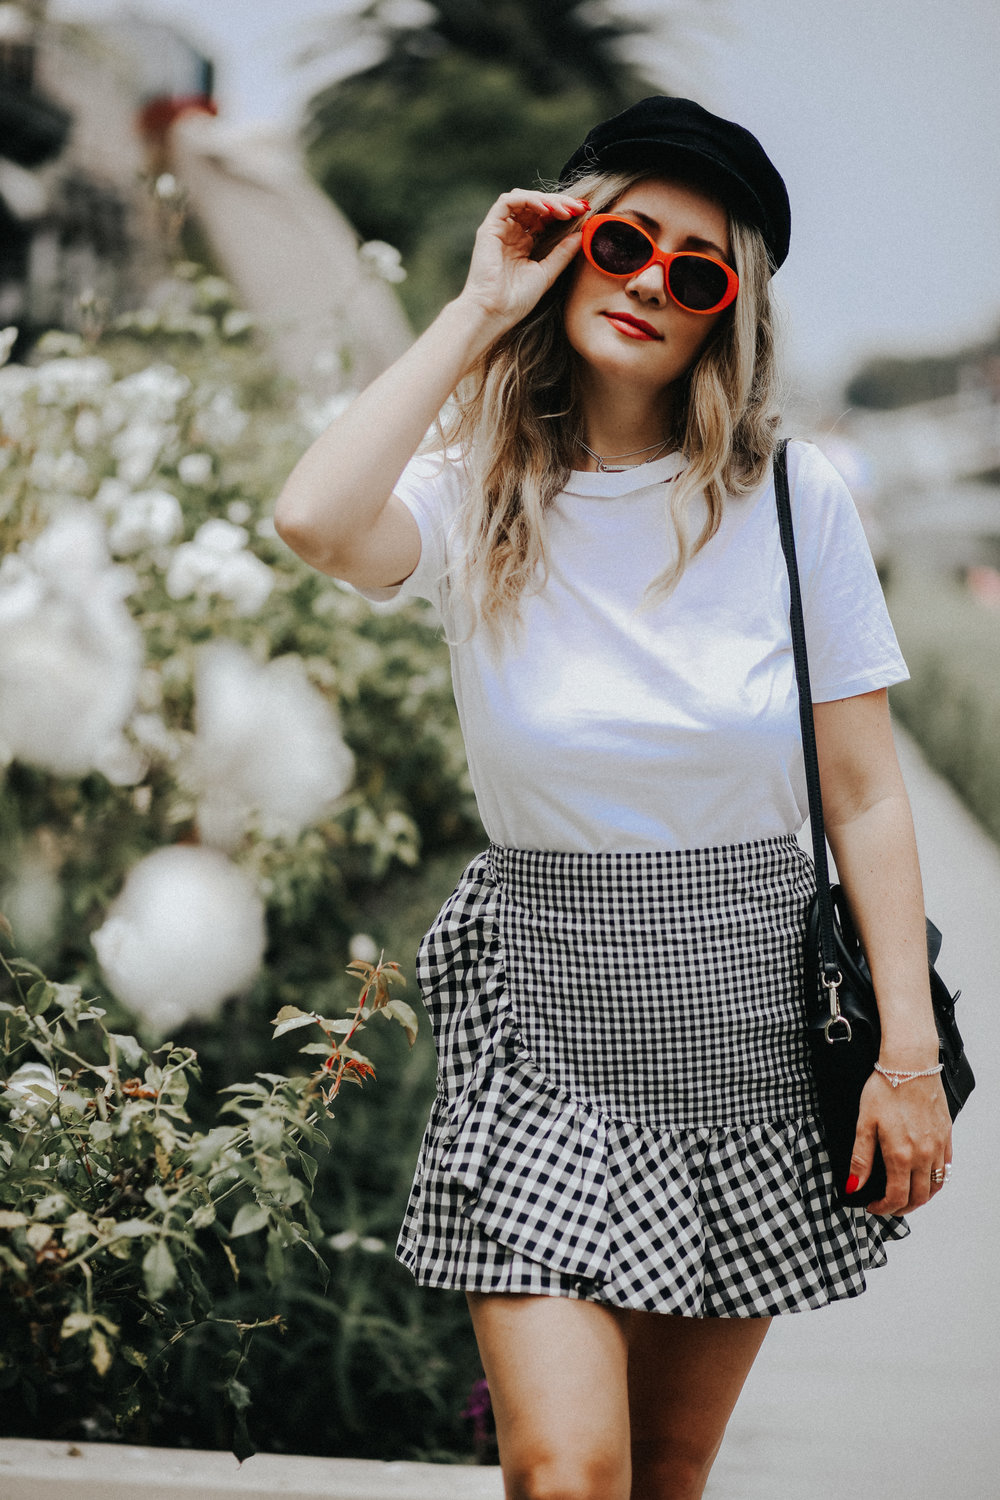 the style sauce blog gingham skirt orange sunglasses venice beach canals